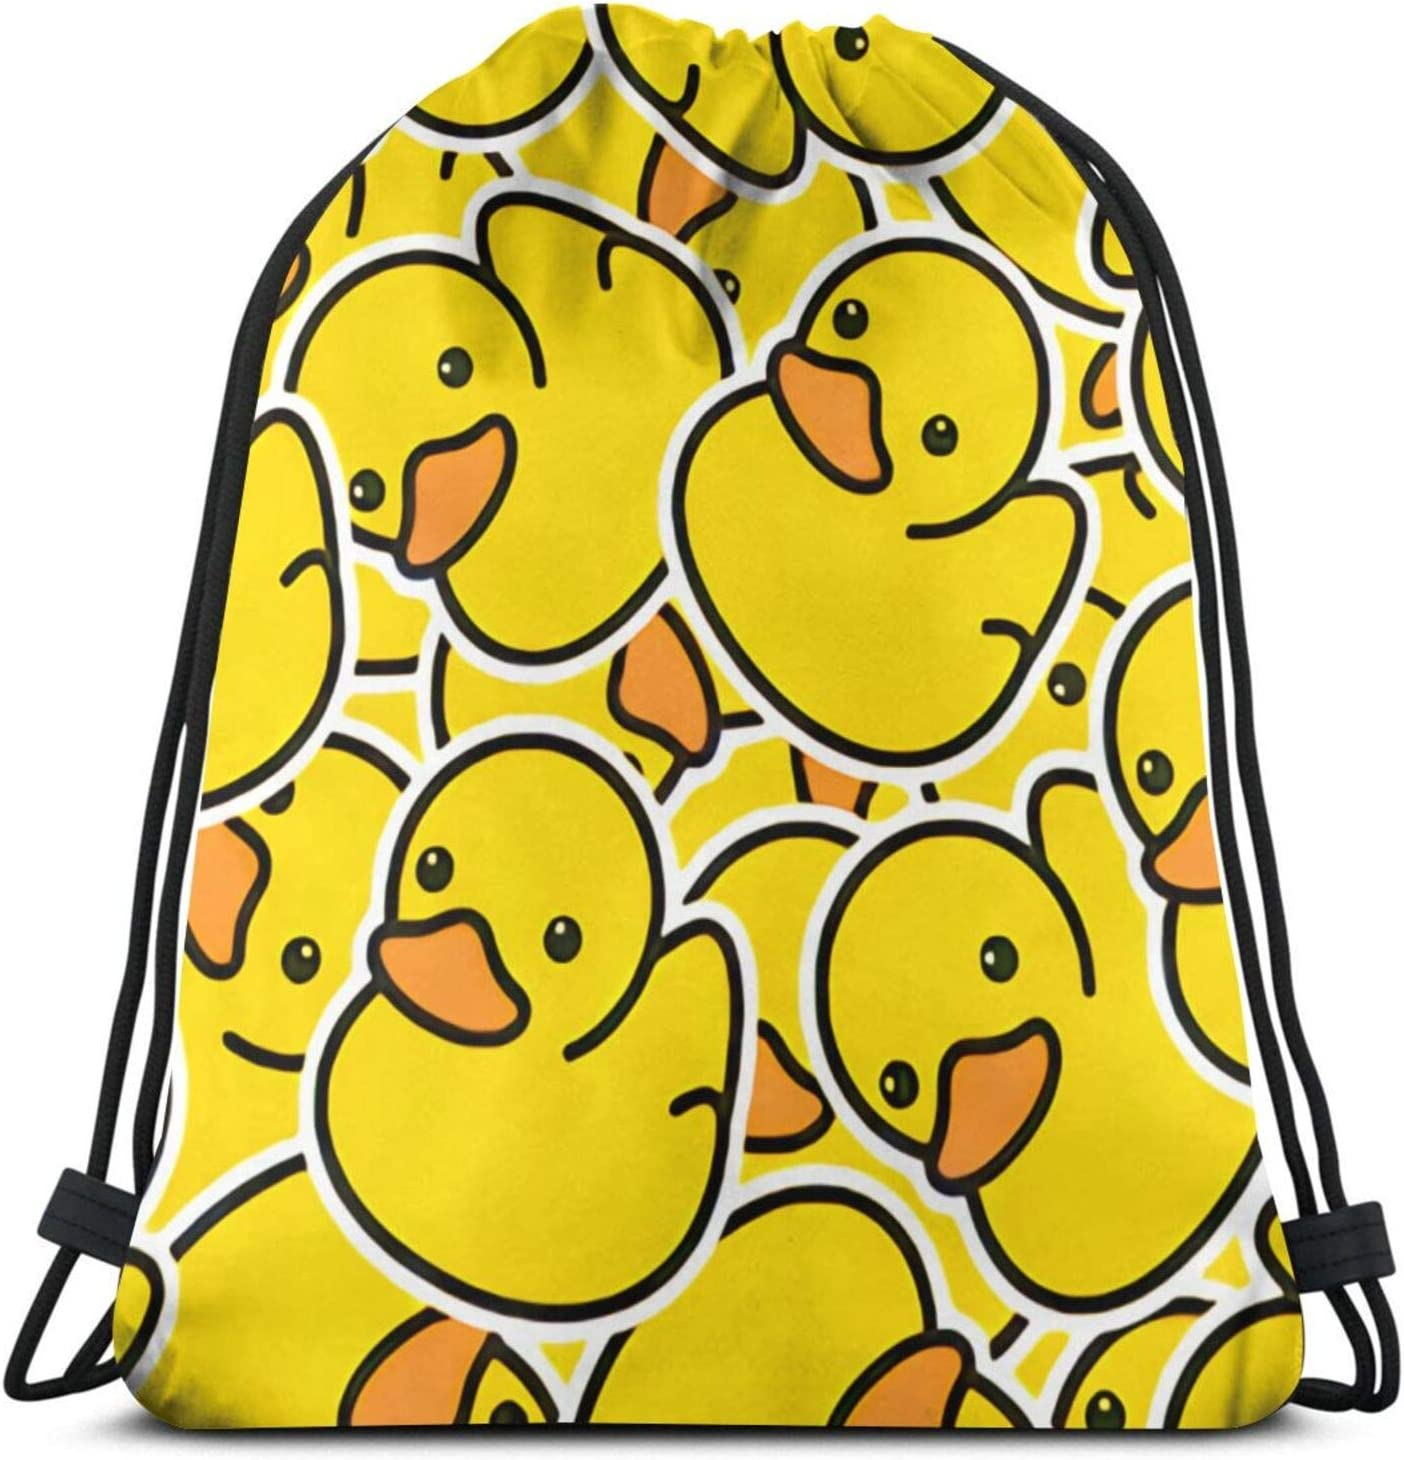 Drawstring Backpack Bags Sports Gym String Bags 3D Print Rucksack Shoulder Bag Beach Duck Seamless Pattern Rubber Sack Party Favor Bags